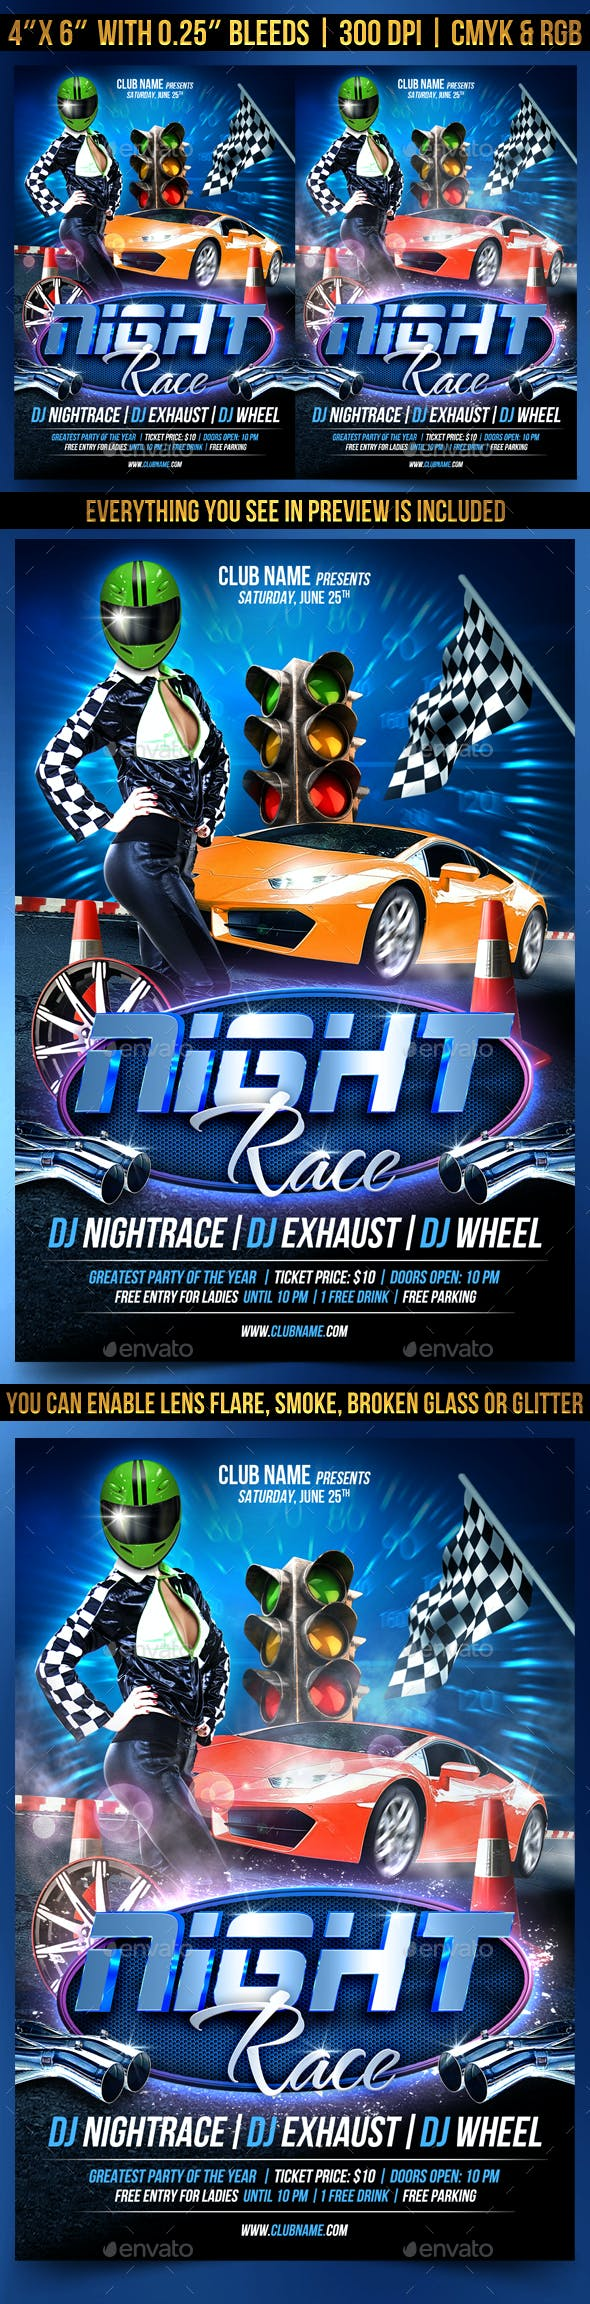 night race flyer template by gugulanul graphicriver